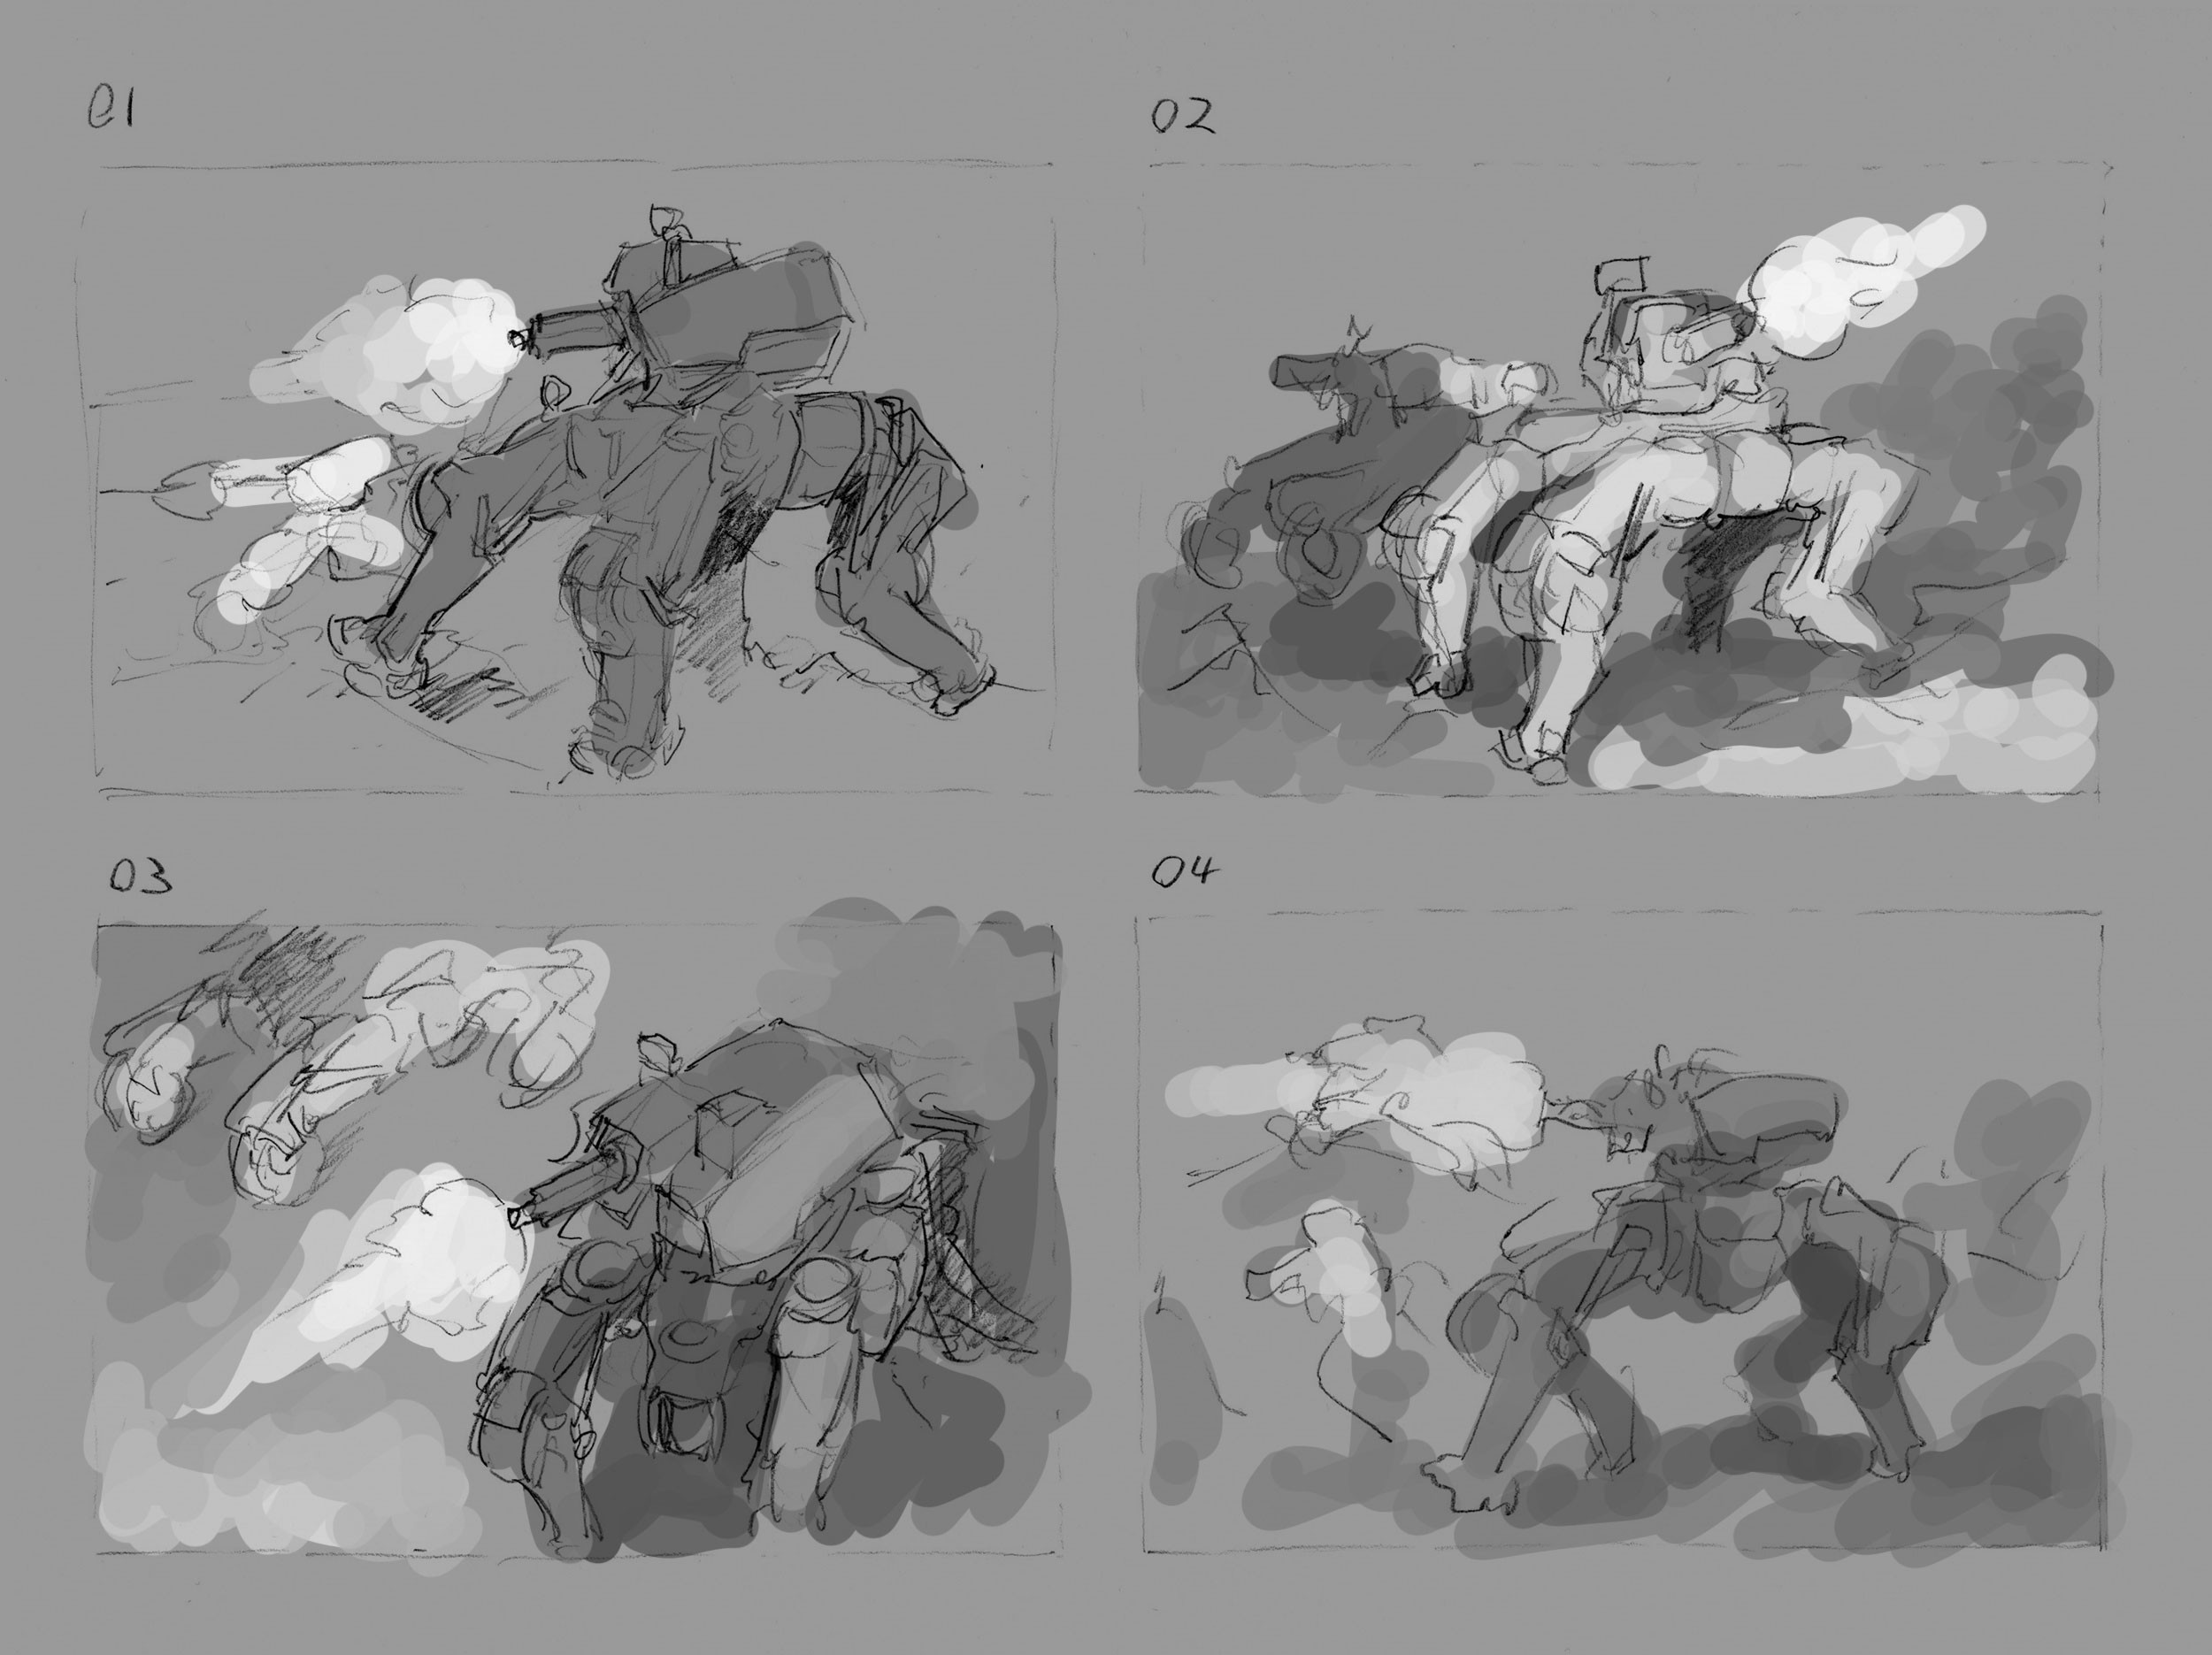 Thumbnails for the final art